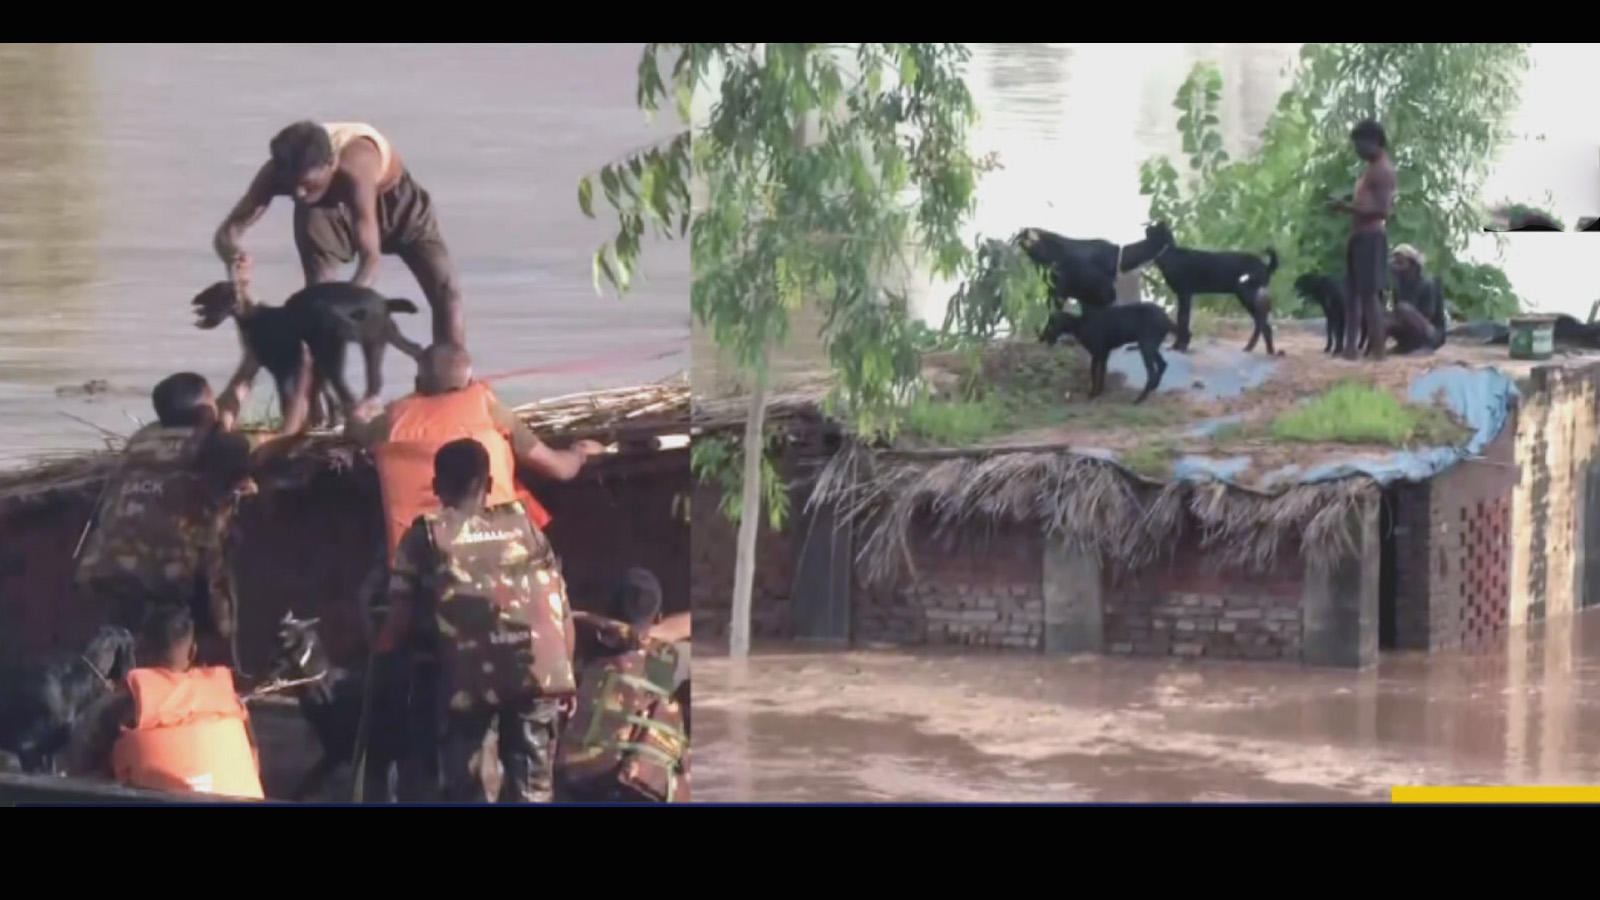 watch-army-team-rescues-goats-from-rooftop-of-submerged-house-in-punjab